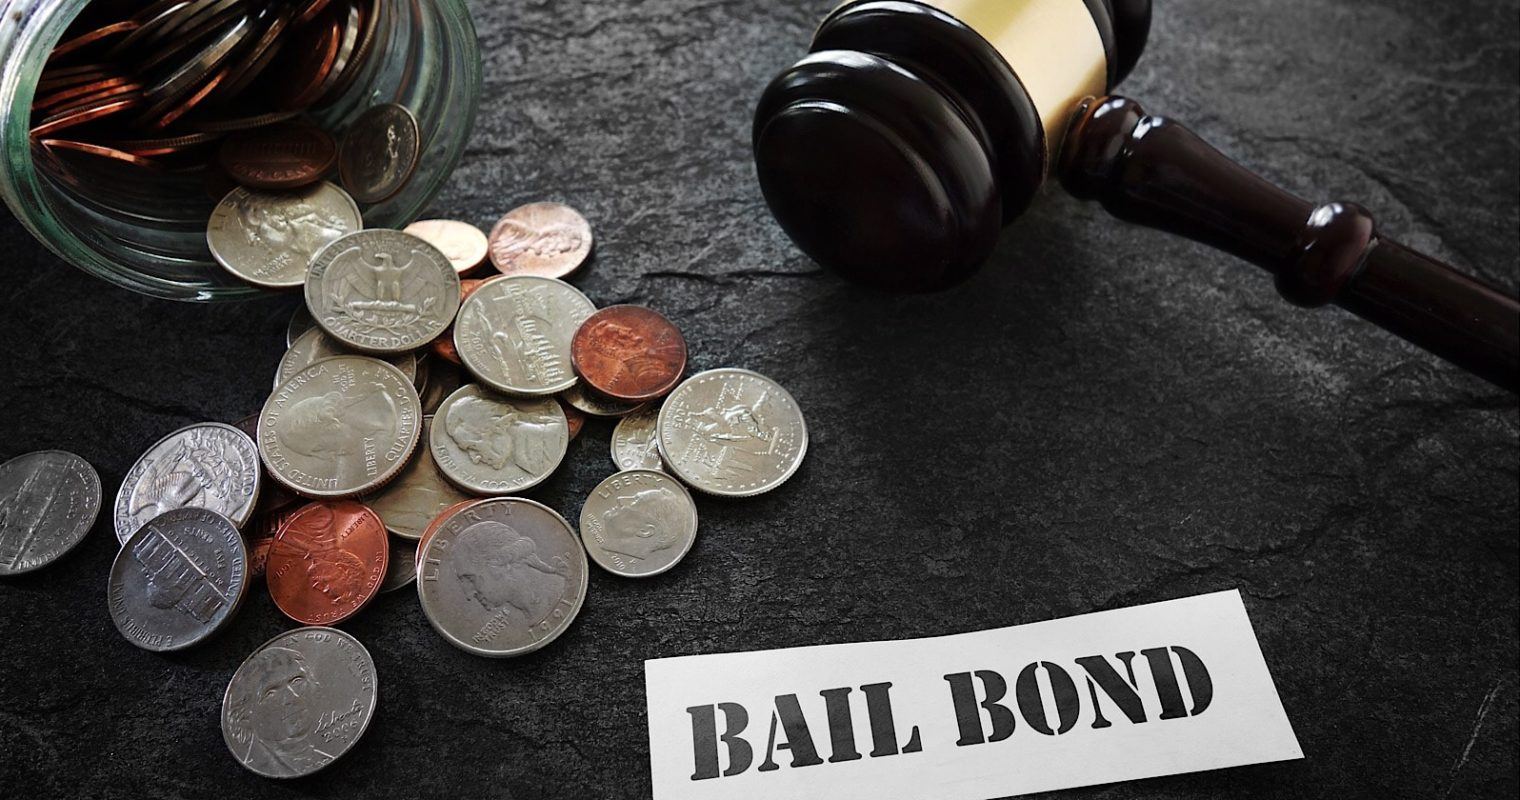 Google to Ban Ads for Bail Bonds, Effective July 2018